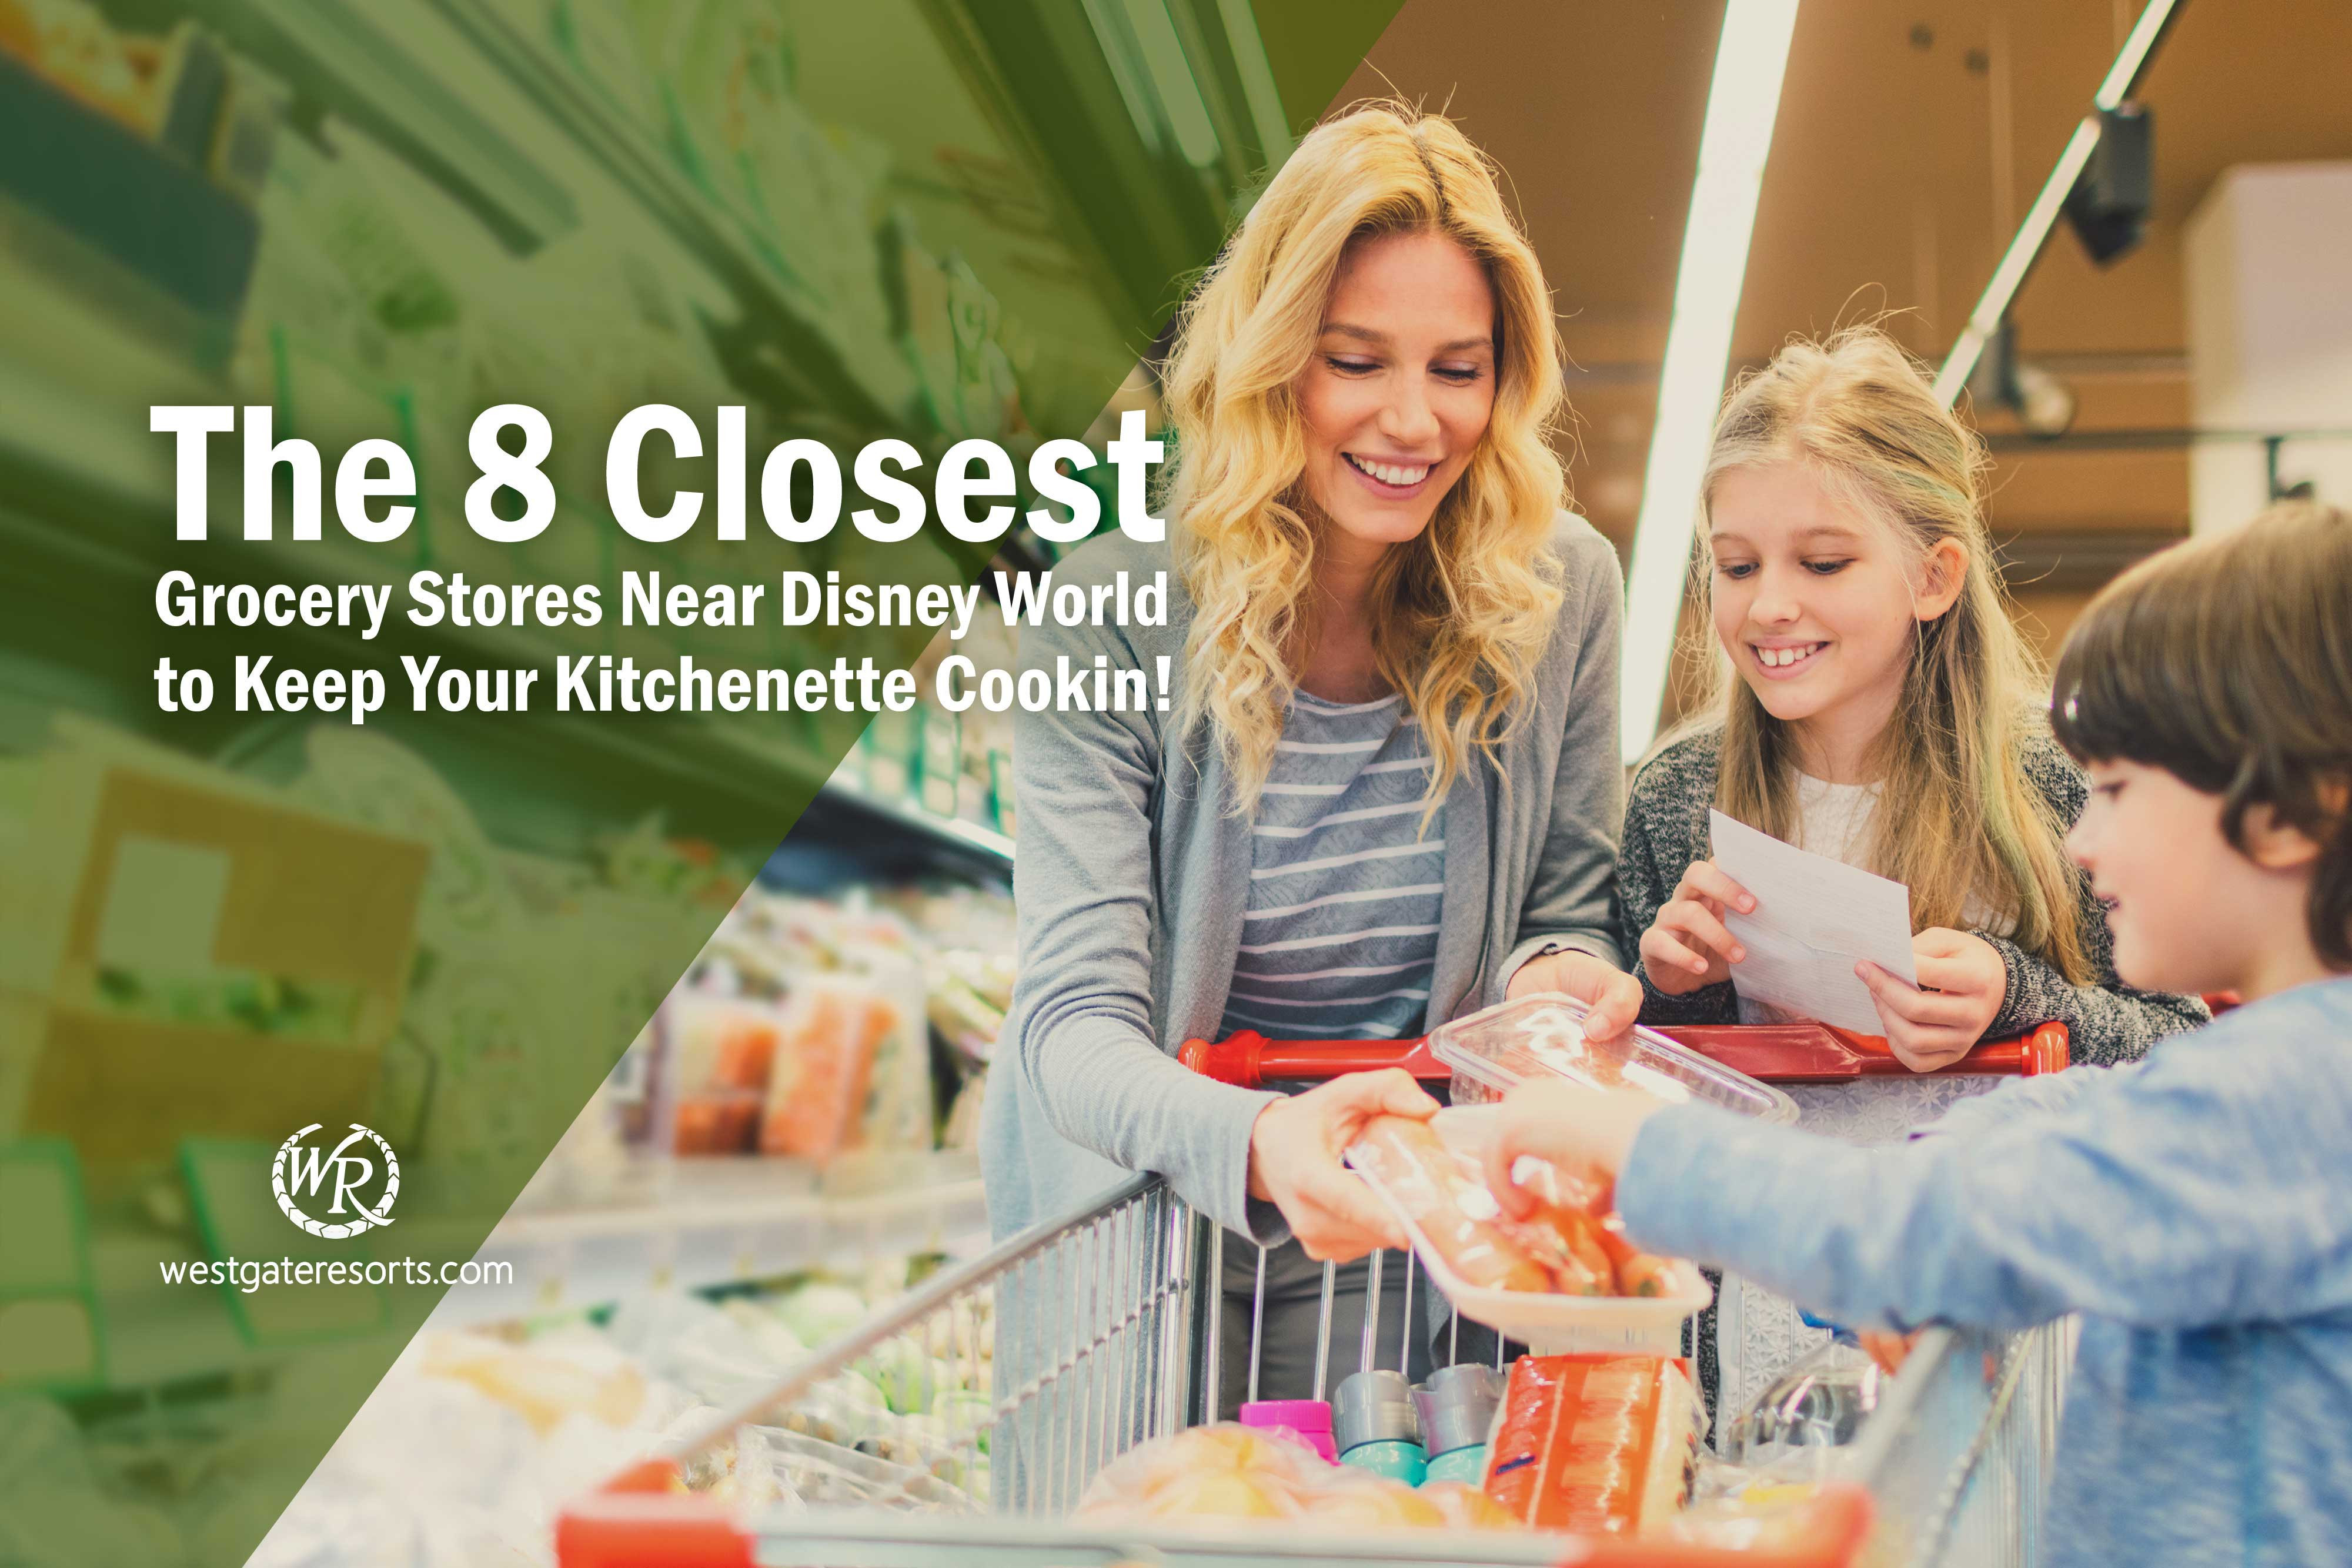 The 8 Closest Grocery Stores Near Disney World to Keep Your Kitchenette Cookin'!